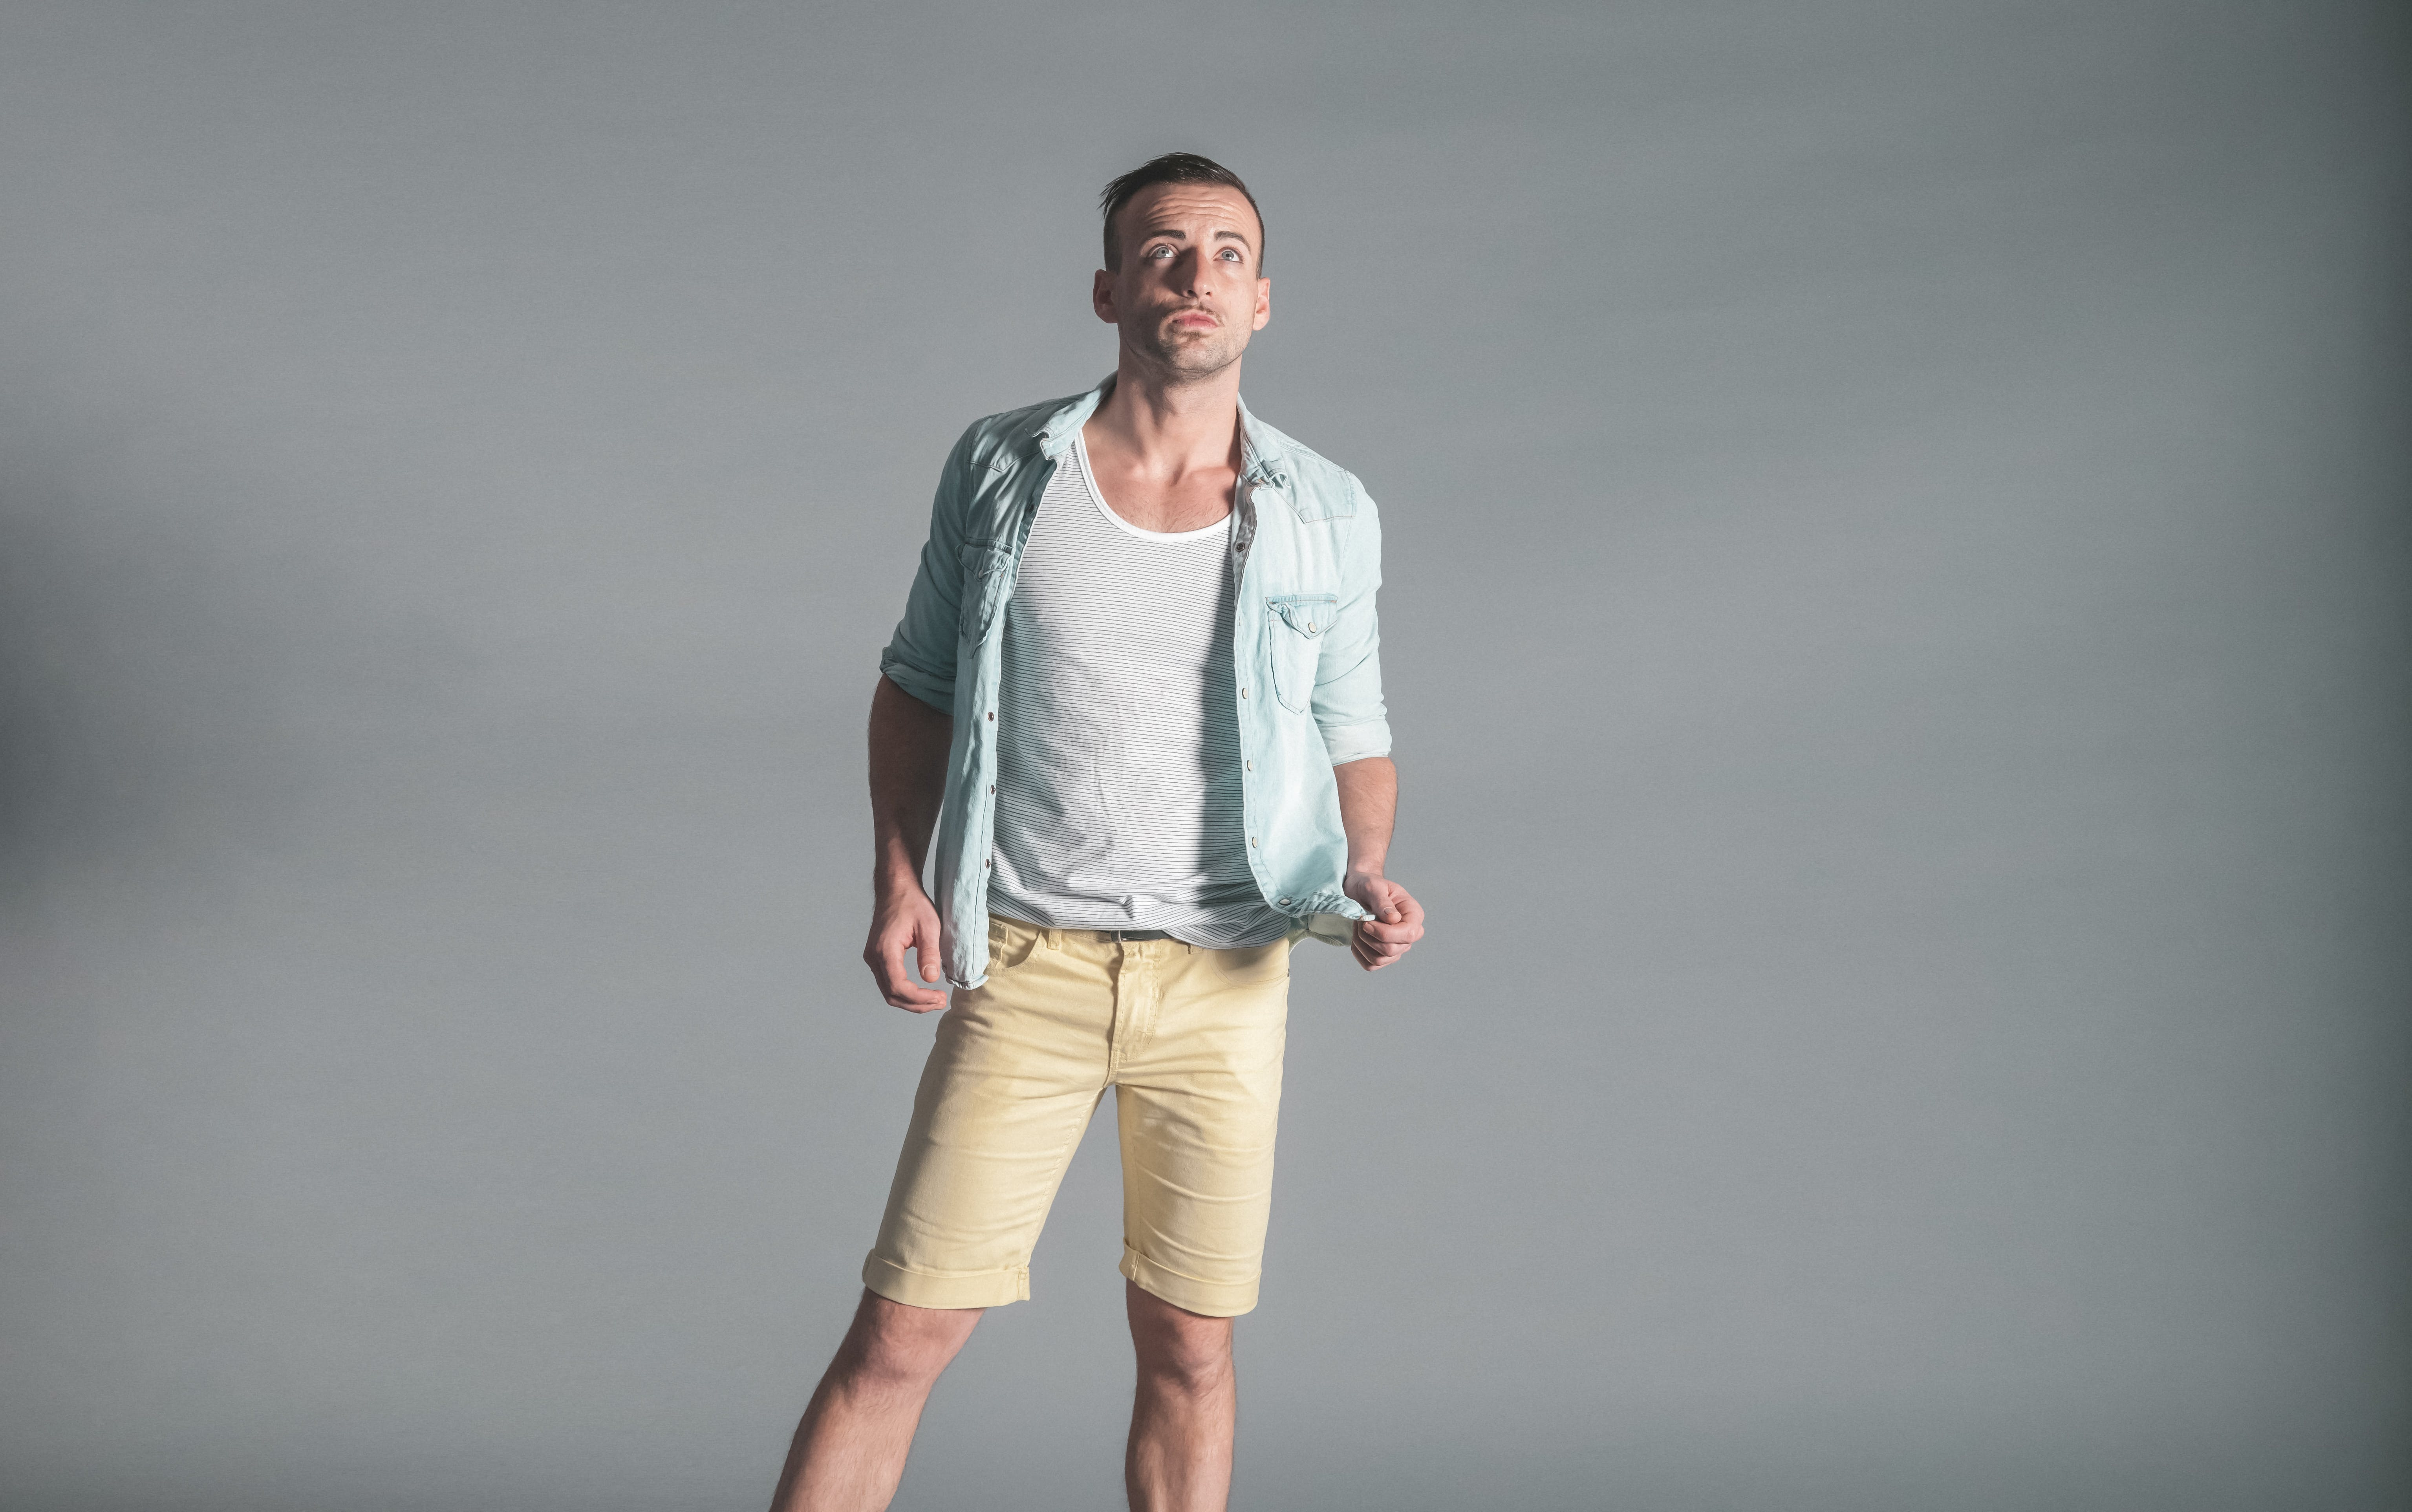 Free stock photo of fashion, man, person, shorts